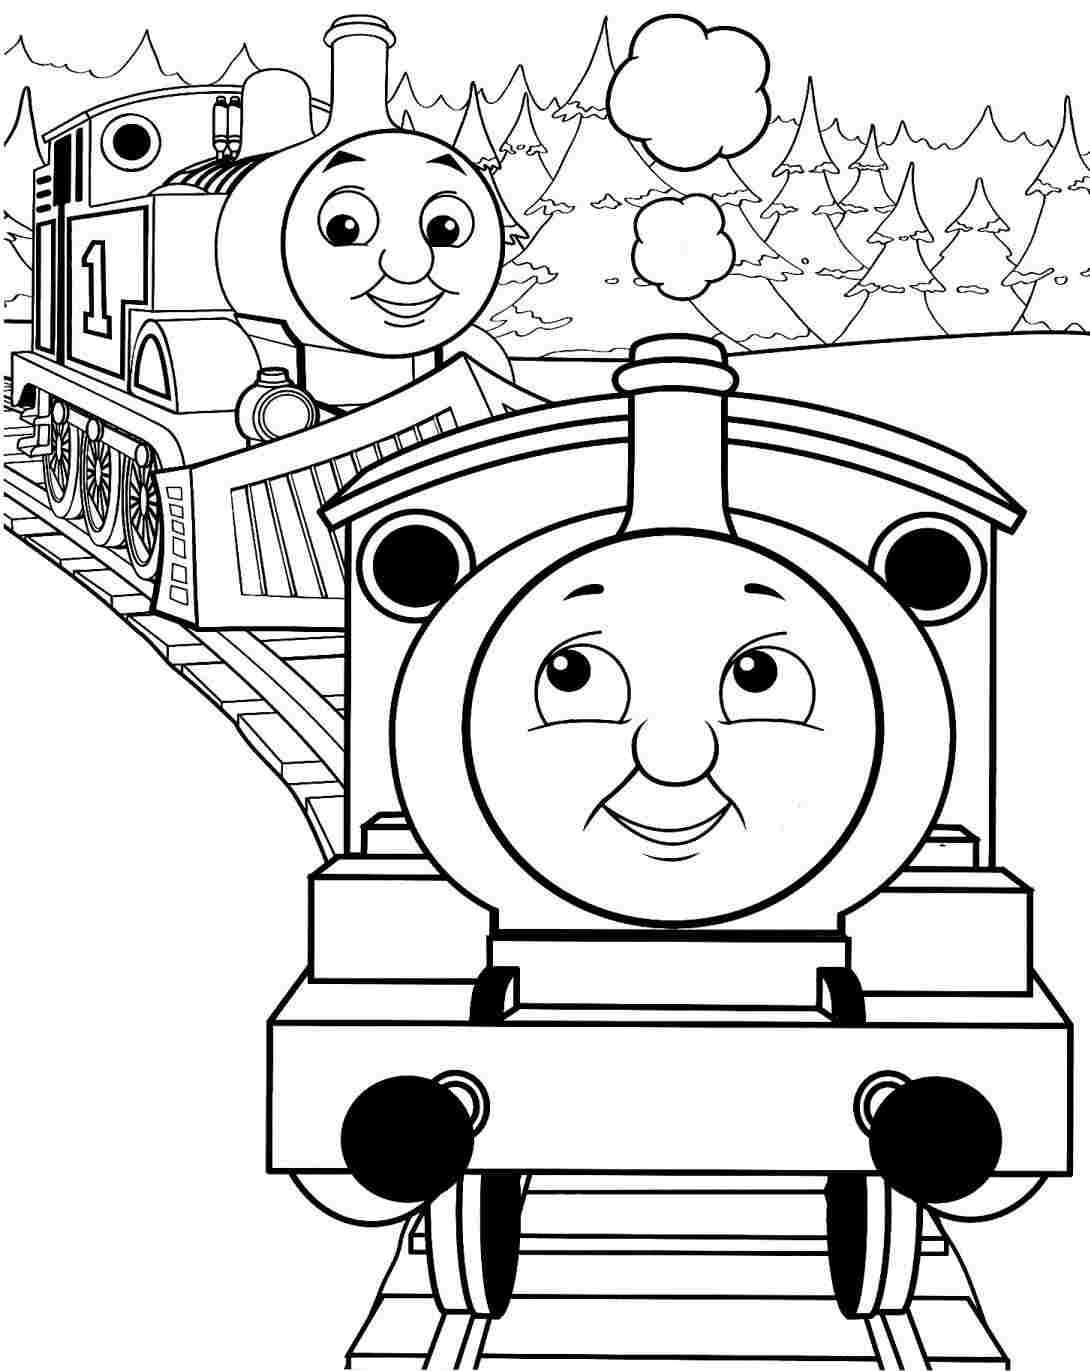 - Simple Thomas The Train Coloring Pages · Thomas The Train Coloring